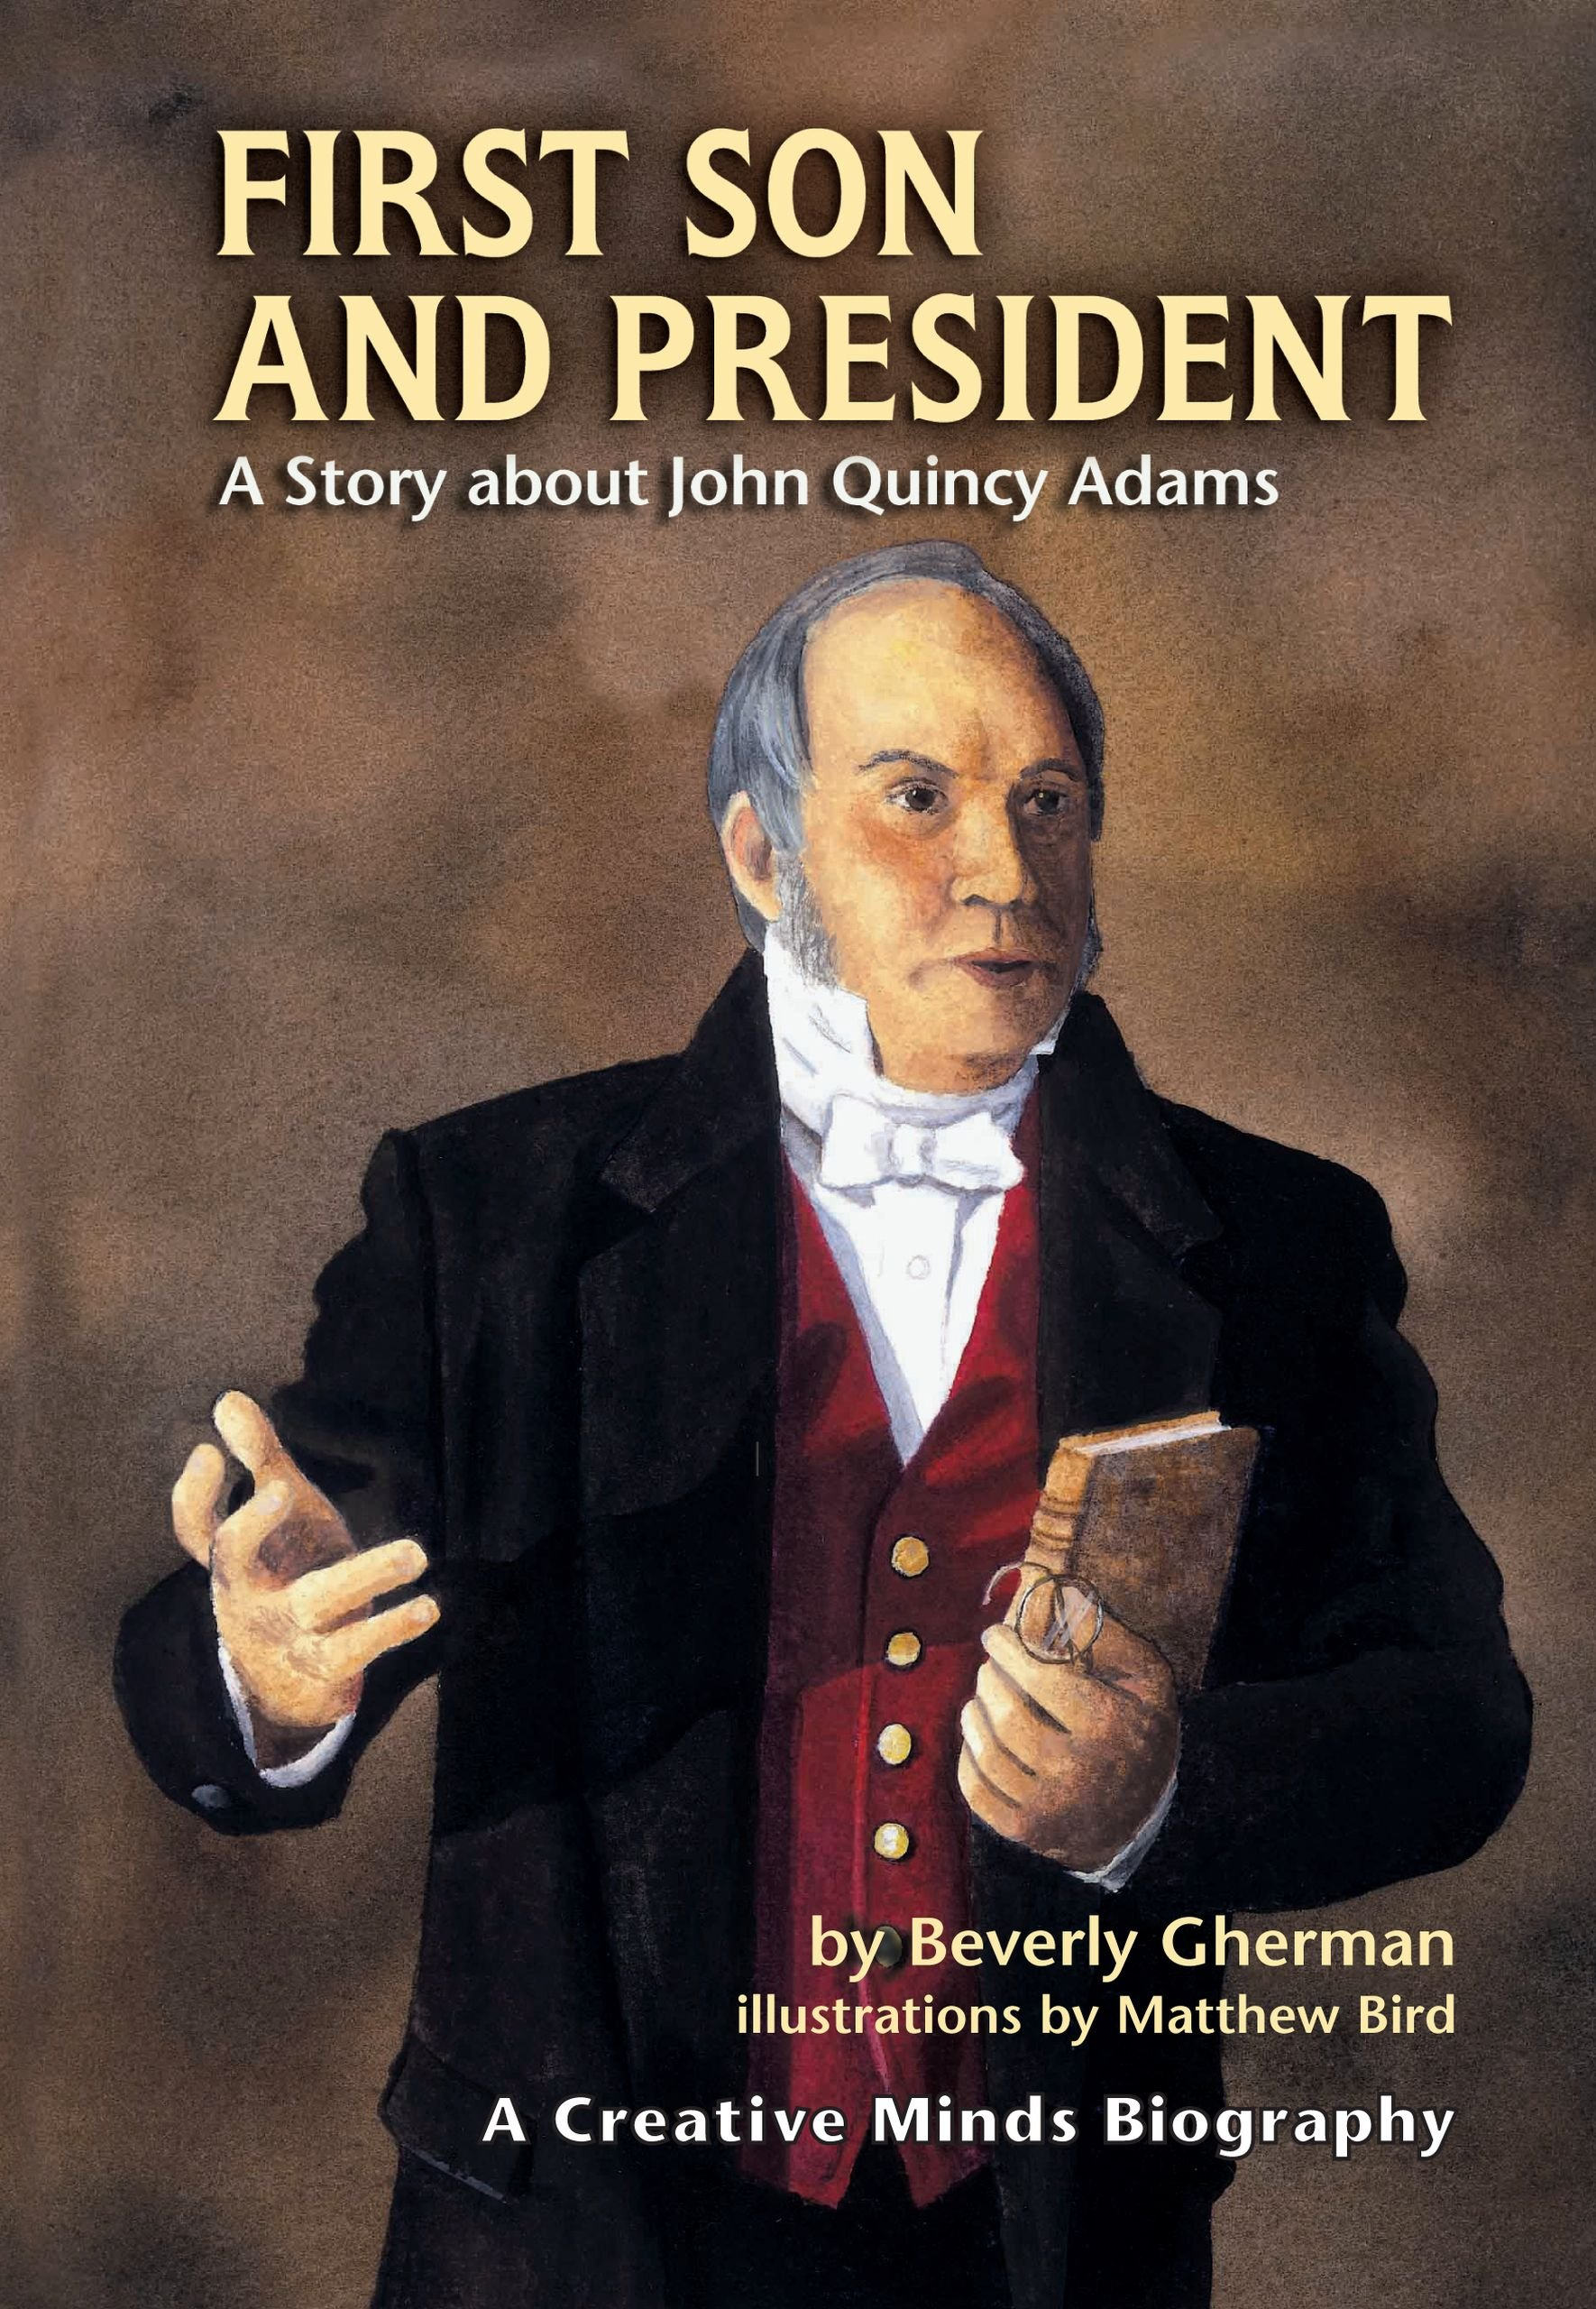 First Son and President: A Story about John Quincy Adams (Creative Minds Biography) (Creative Minds Biographies) PDF